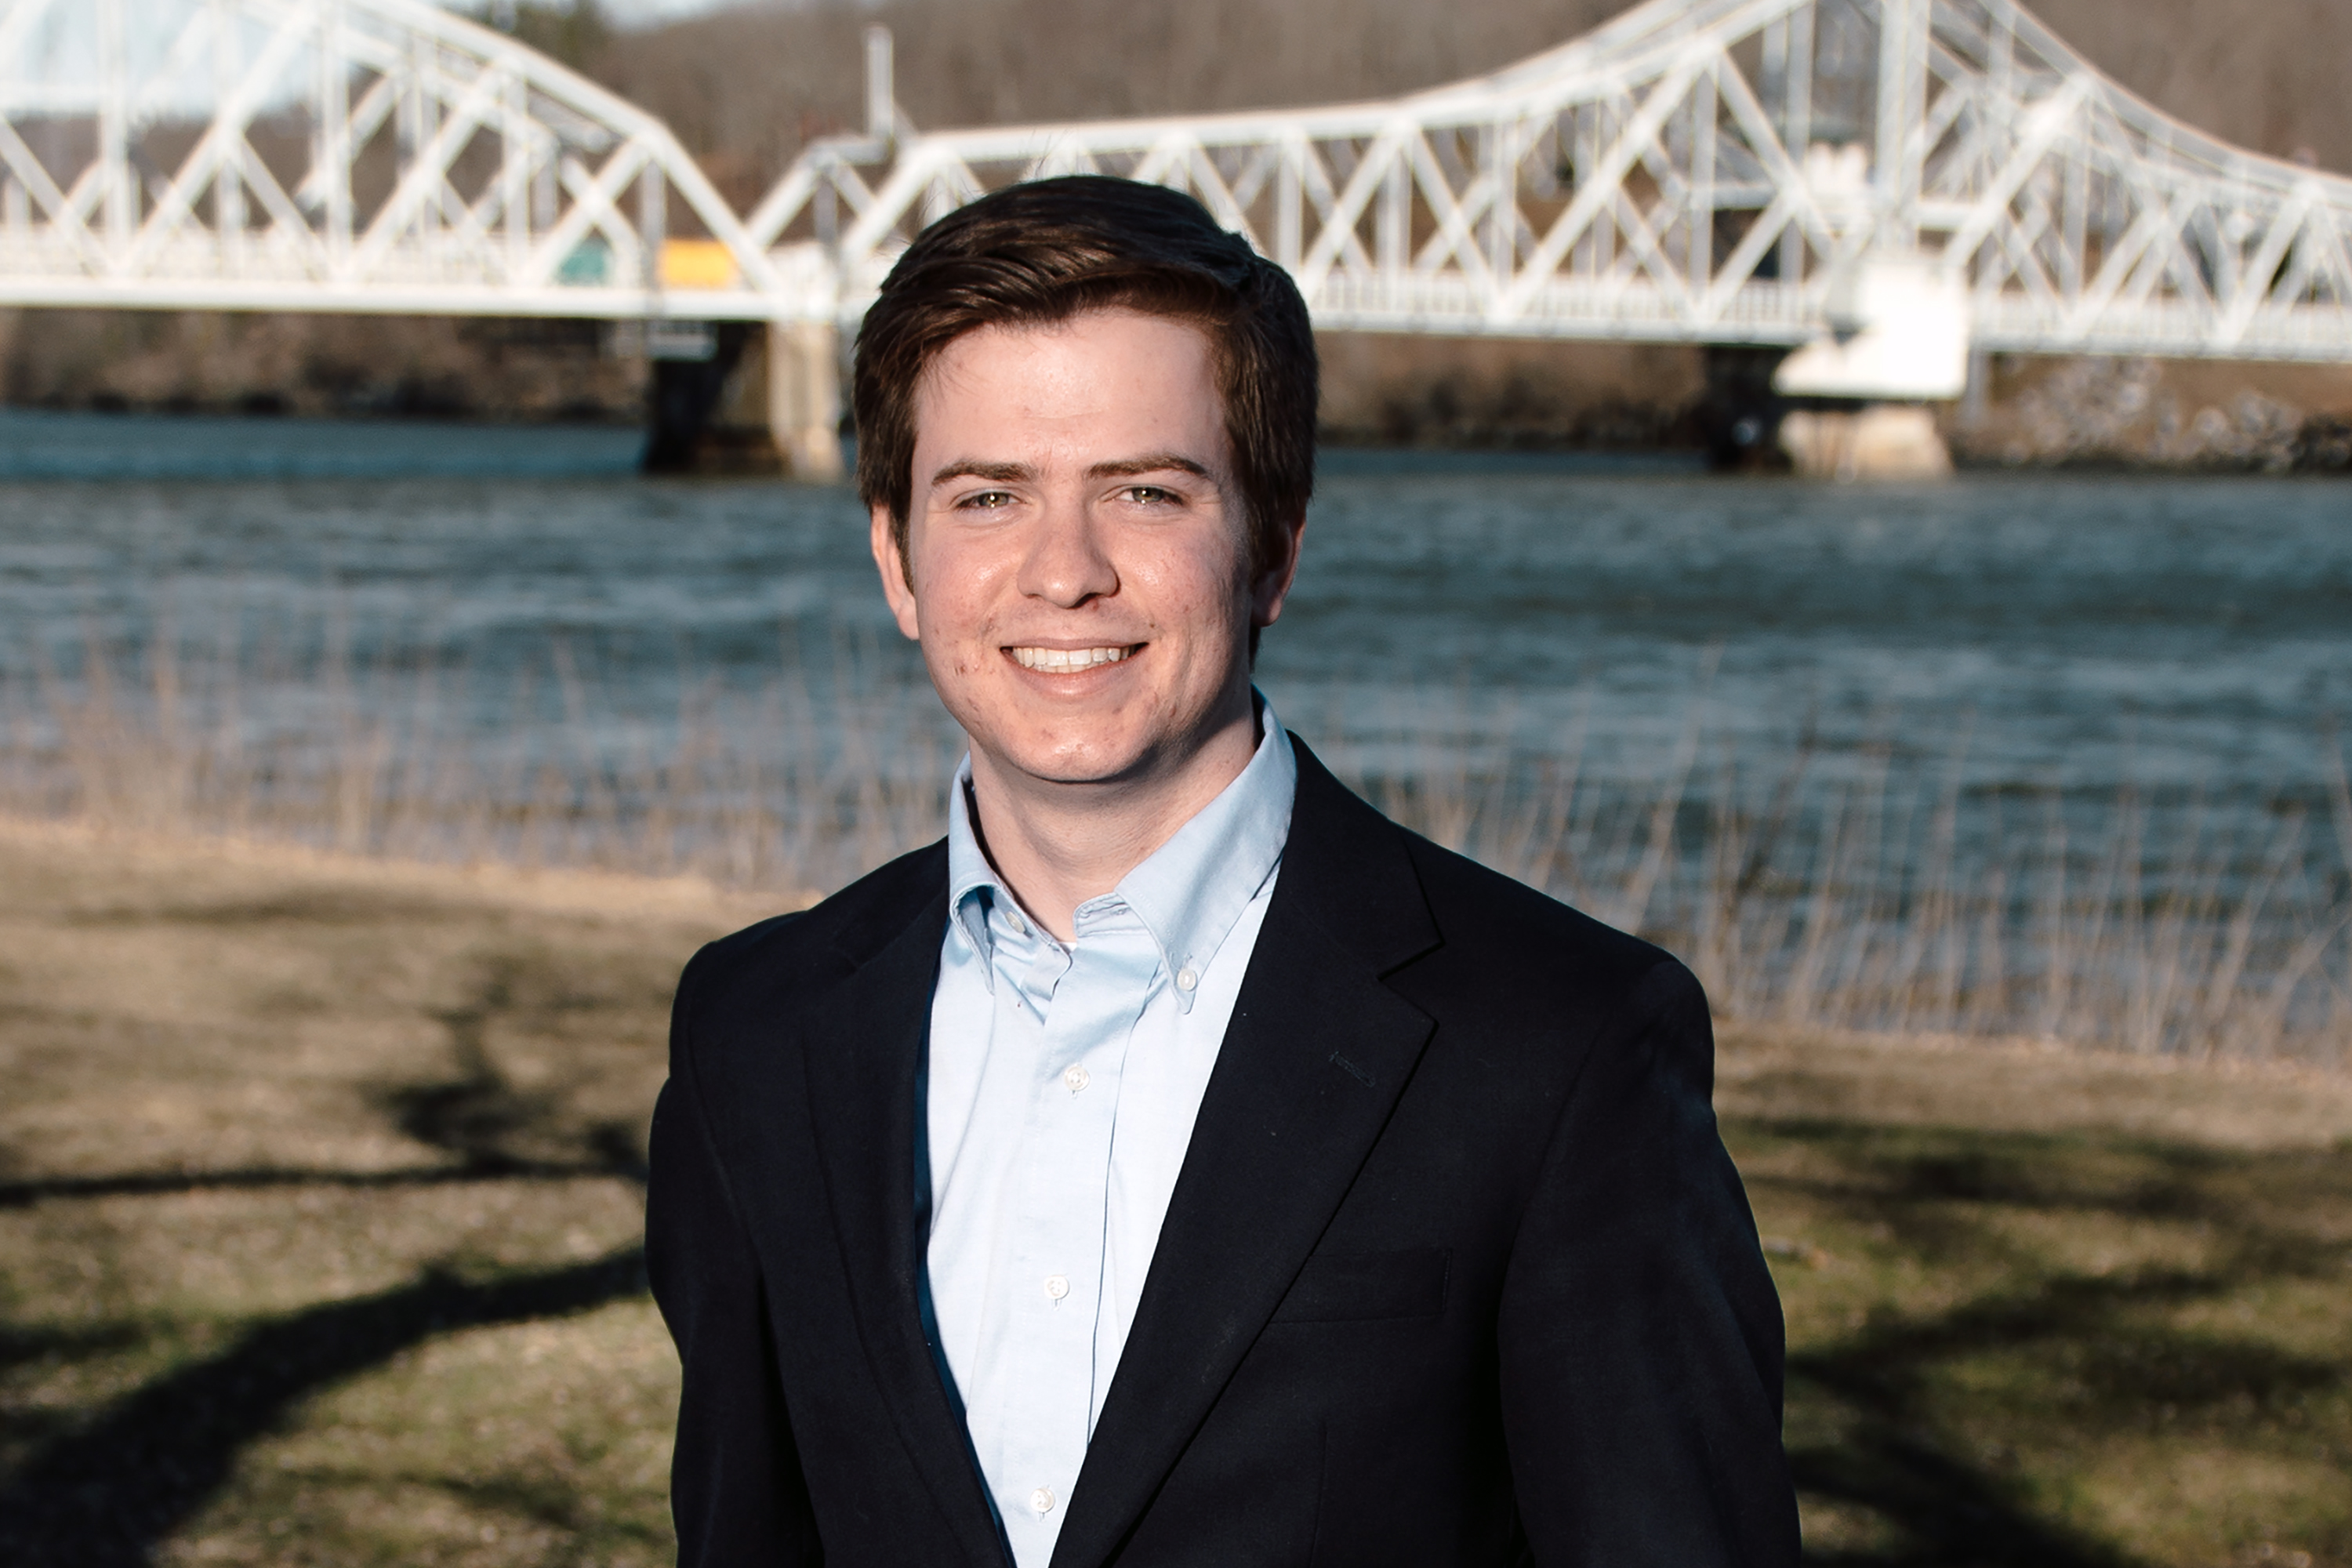 Kevin McMullen, a structural engineering Ph.D. student at UConn, has designed a bridge-safety monitoring device.